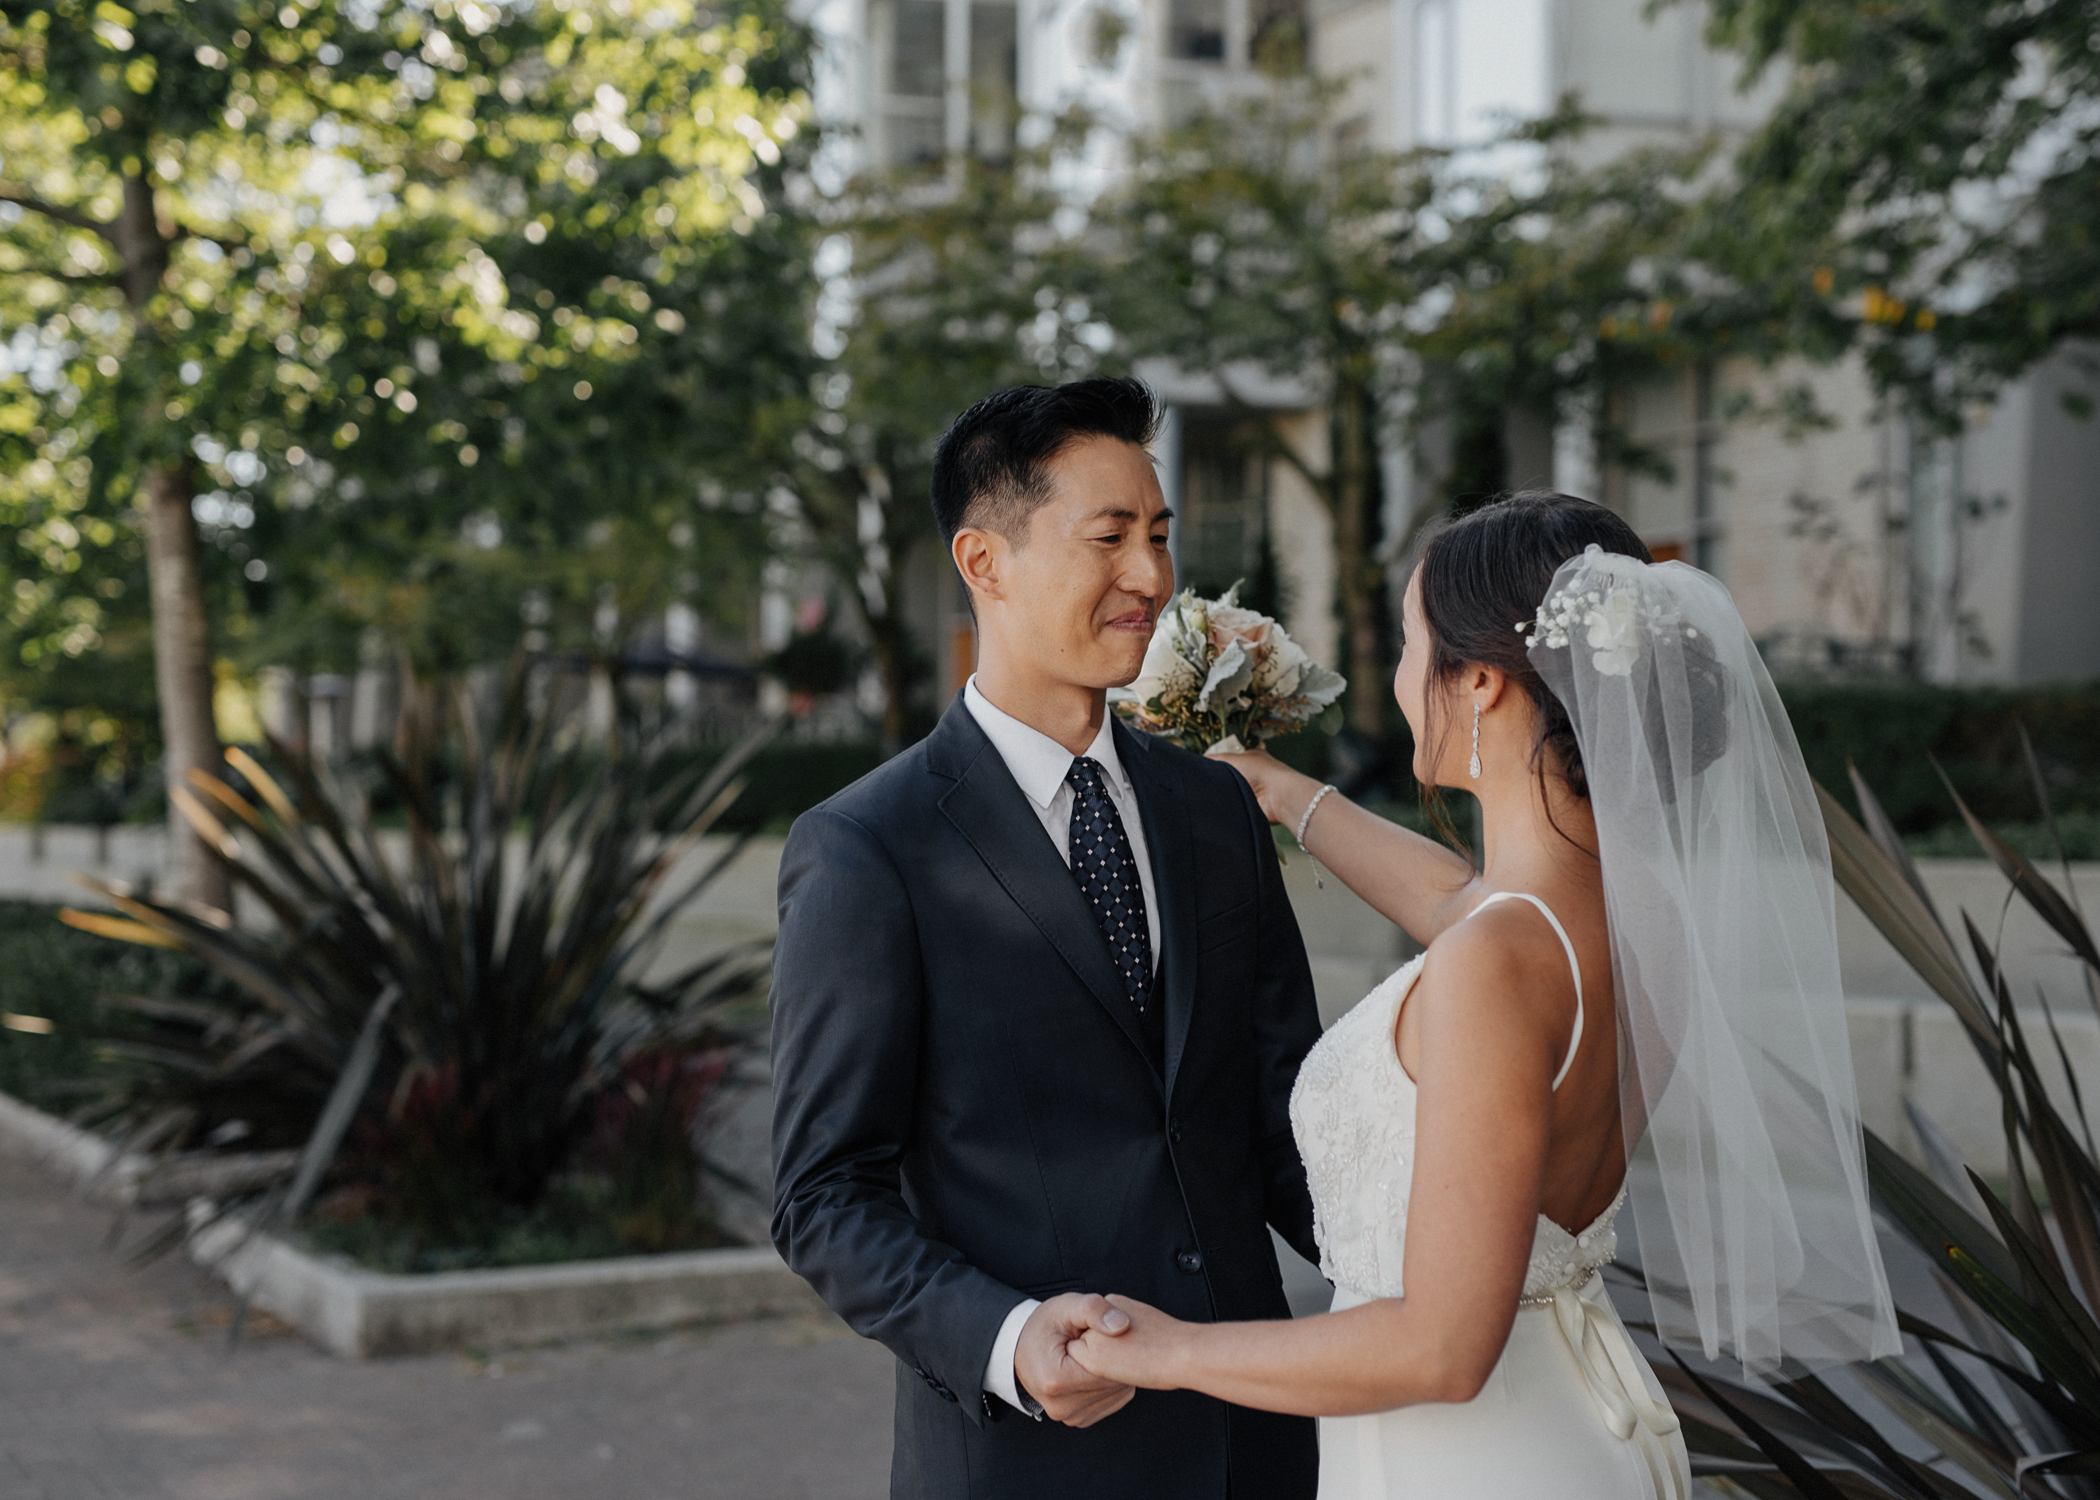 022-kaoverii-silva-az-wedding-vancouver-photography.png